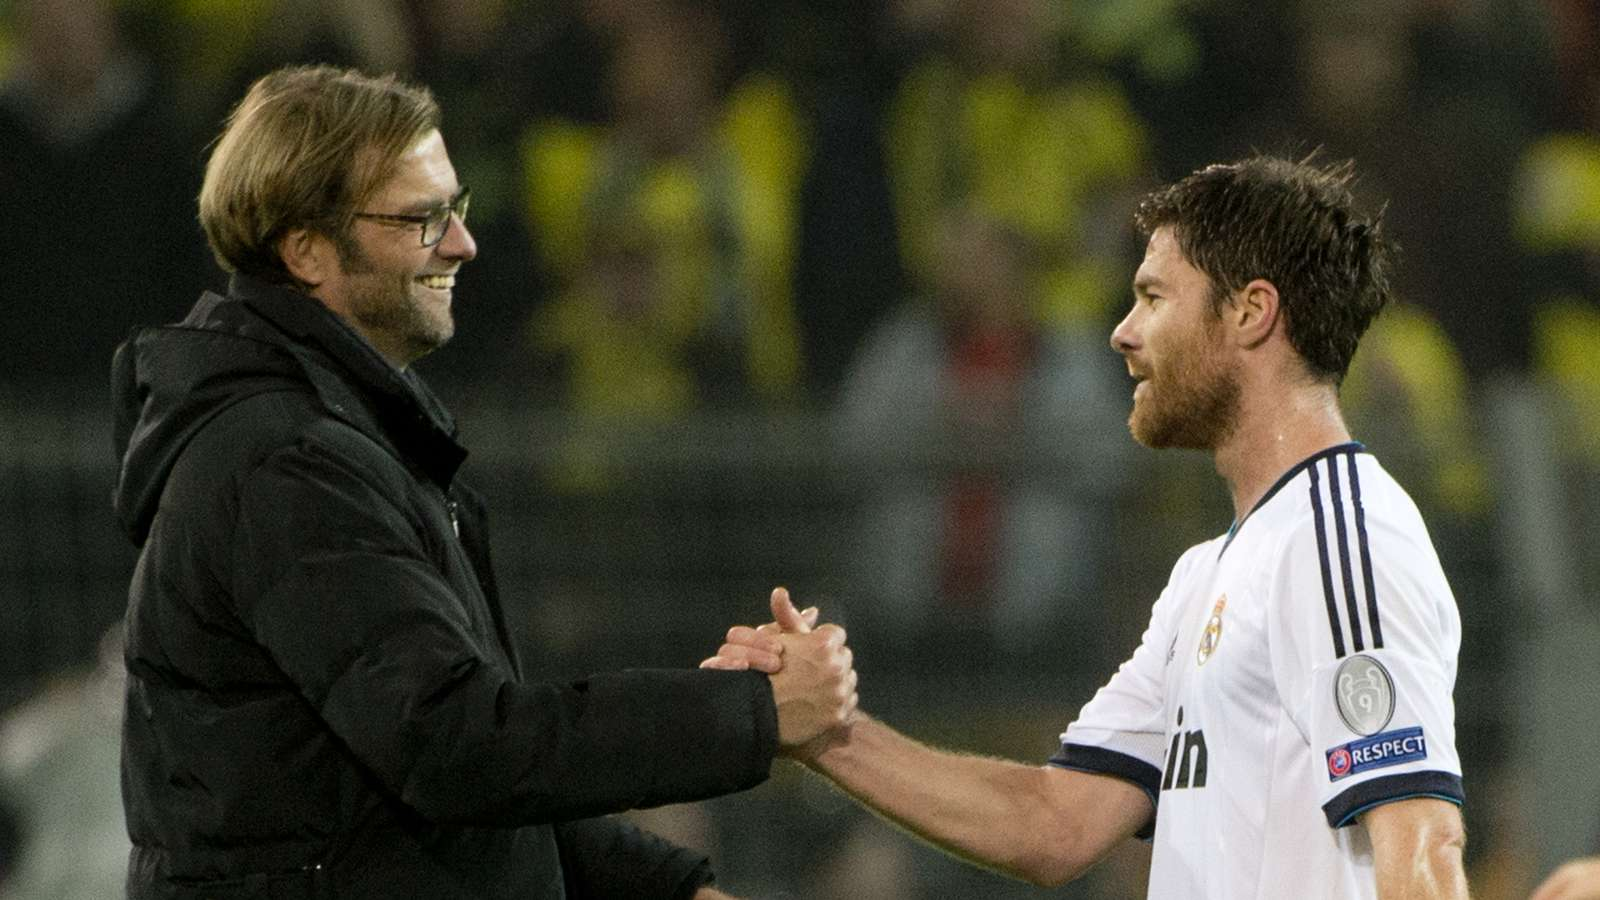 Alonso: Klopp deserves the Ballon d'Or and I wish Zidane included